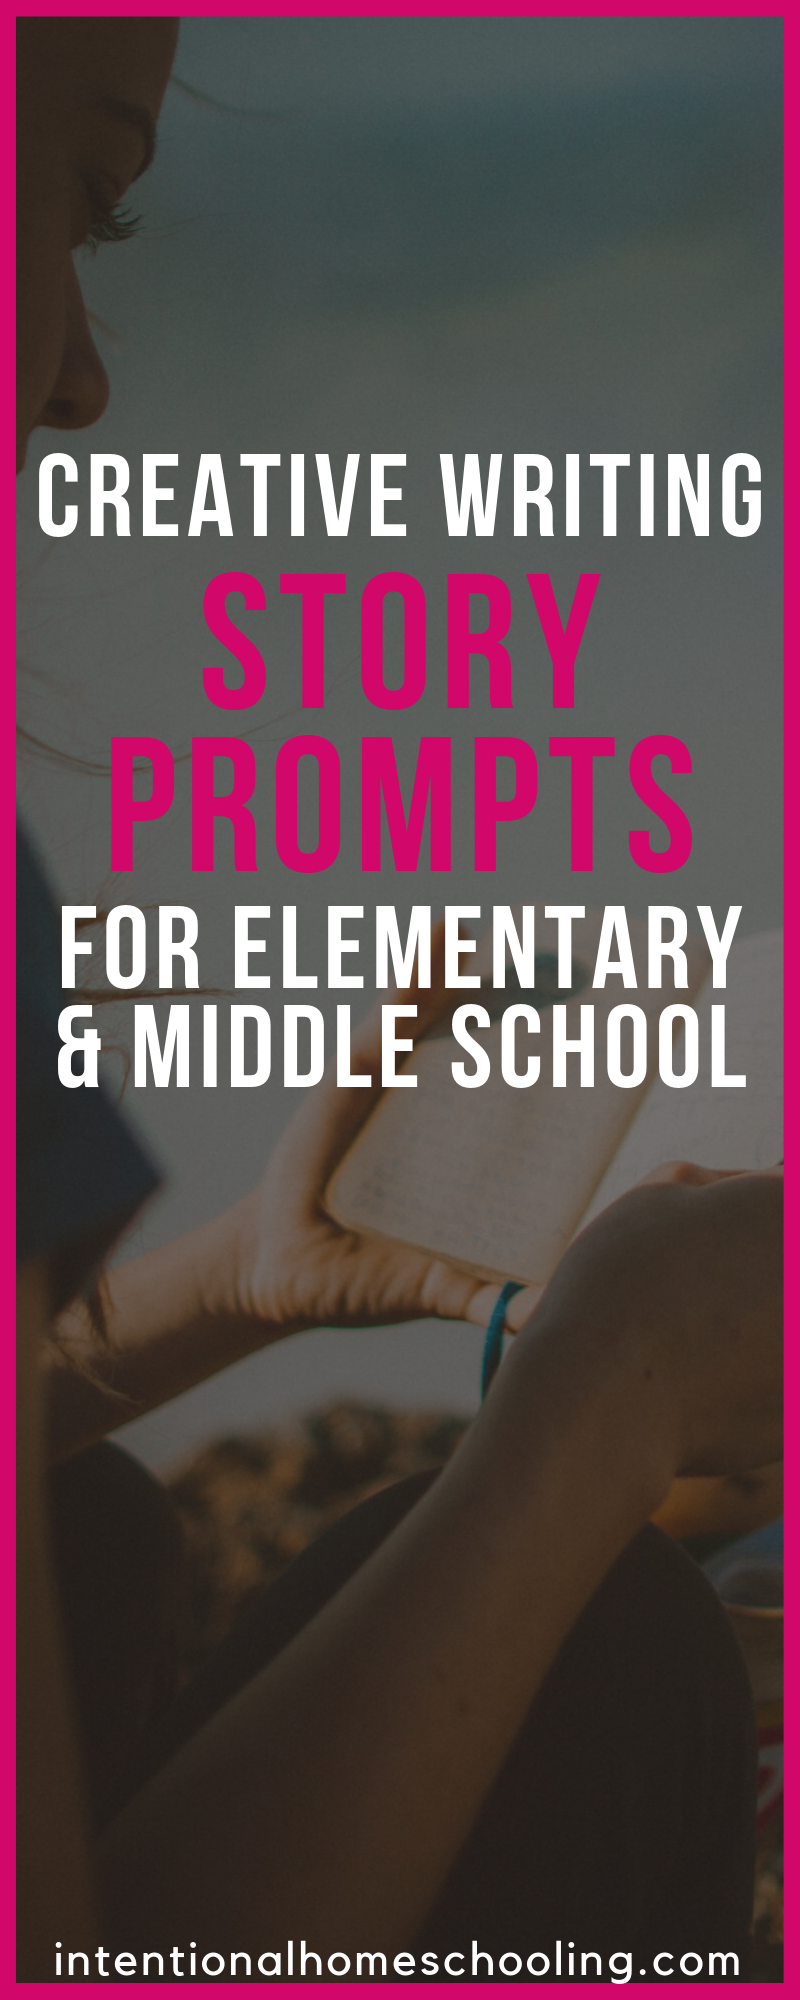 Free Creative Writing Story Prompts - fun prompts for creative writing for elementary and middle grades